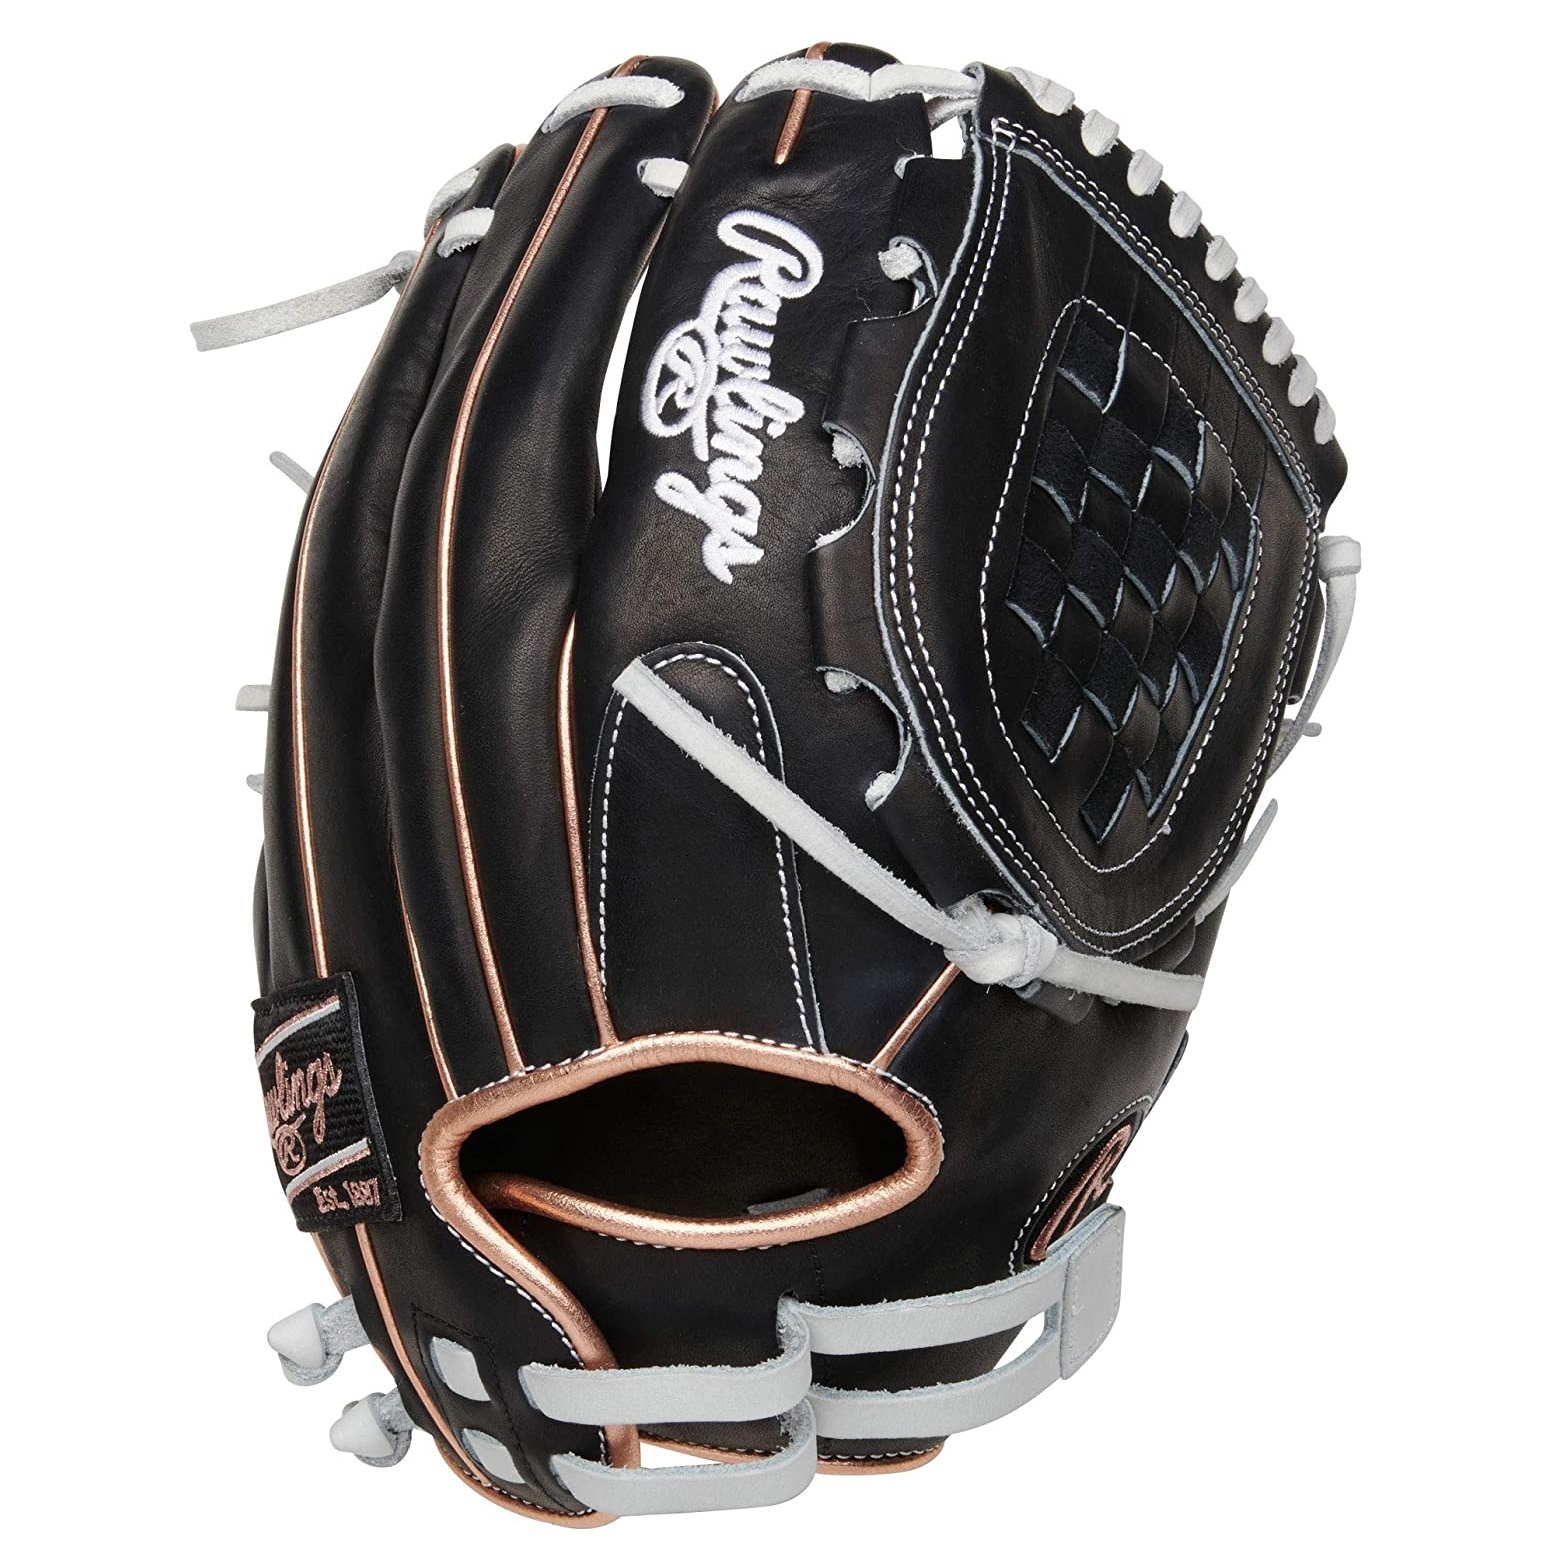 Artfully crafted from quality full-grain leather, the 2021 12-inch Heart of the Hide softball glove offers the same unmatched quality you expect from any HOH glove. Its 12-inch pattern is designed specifically for softball players too. Its large pocket and softer leather construction allow for a quick, easy break-in and game-ready feel. As a result, you'll be playing consistently better defense in no time at all. In addition, this black shell glove with white trim and rose gold welting and binding features a padded thumb sleeve for optimal comfort, and an adjustable Pull-Strap back. This means you get a 'custom fit' and more glove control every inning you're on the field. If you're an elite level softball player this glove is perfect for you. Make it your new gamer.  Color:   Black  Throwing Hand:   Right  Sport:   Softball  Back:   Adjustable Pull Strap  Player Break-In:   35  Fit:   Narrow  Level:   Adult  Lining:   Shell Leather Palm  Padding:   Moldable  Series:   Heart of the Hide  Shell:   Horween Featherlight Leather  Web:   Basket  Size:   12 in  Pattern:   120SB  Age Group:   Pro/College, High School